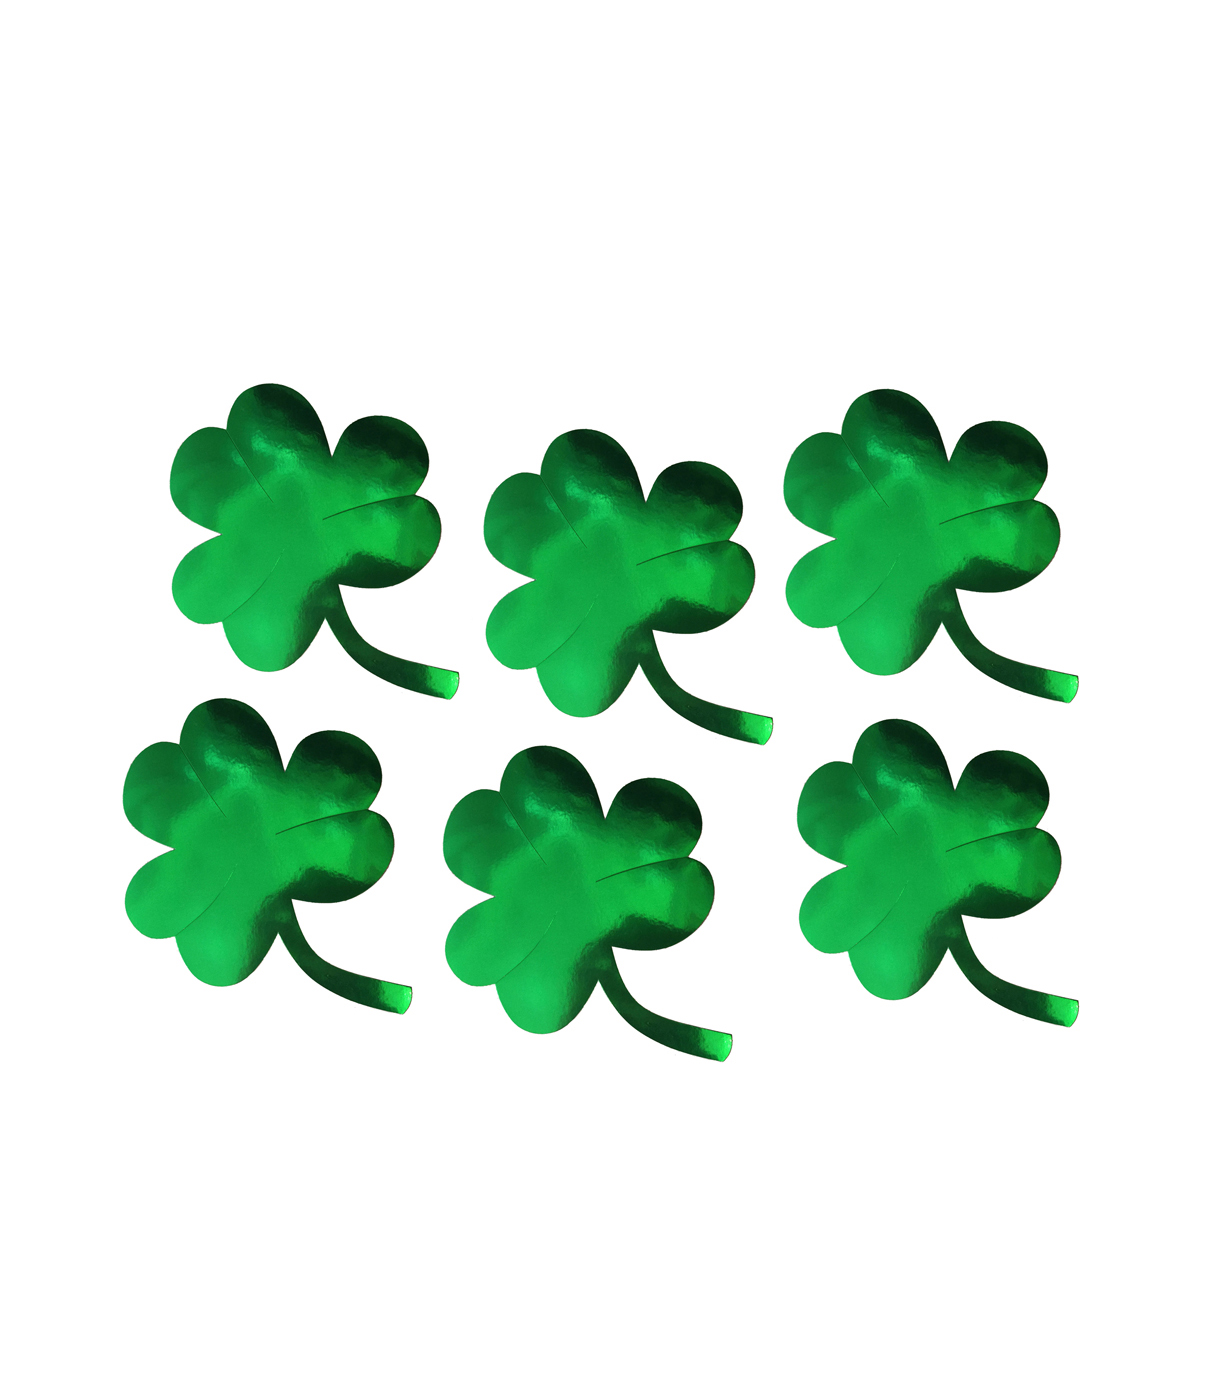 SHAMROCK CUT OUT SILHOUETTES - MEDIUM PACK OF 6